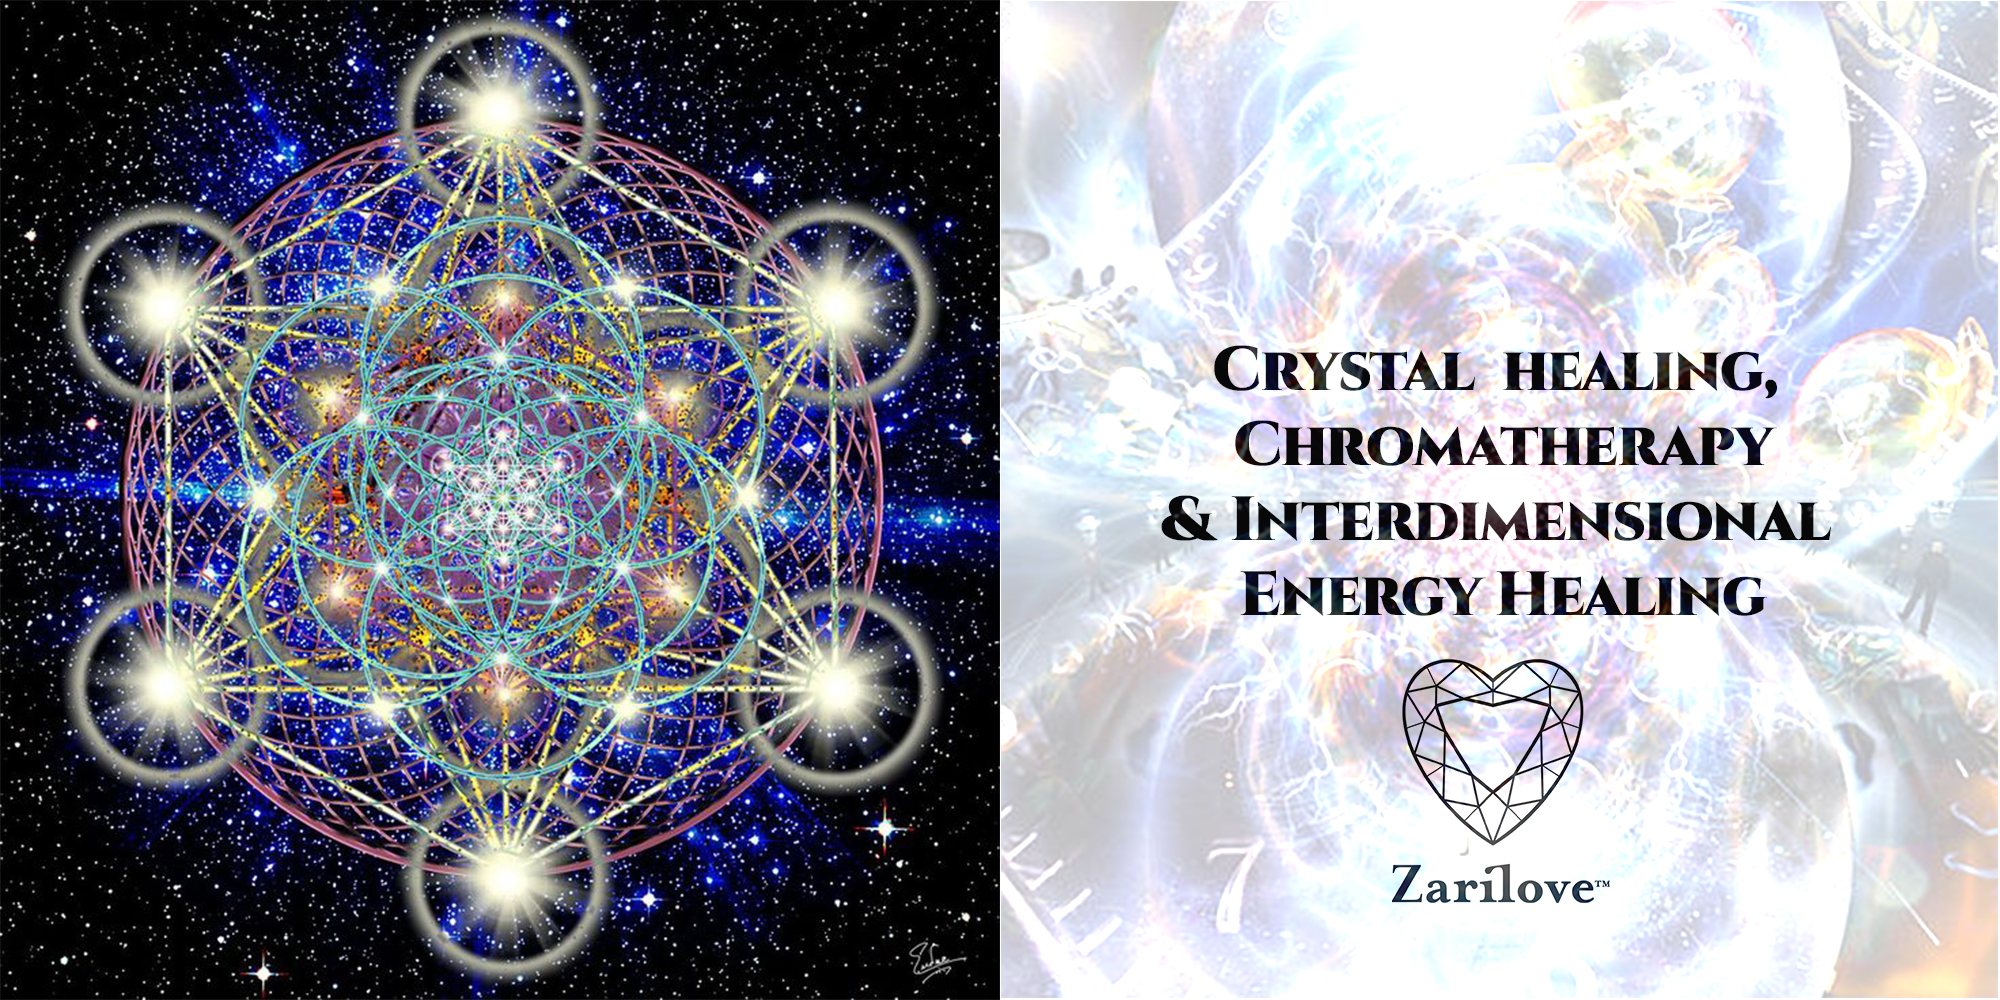 Crystal Healing with Inter-dimensional Energy Healing. Manchester